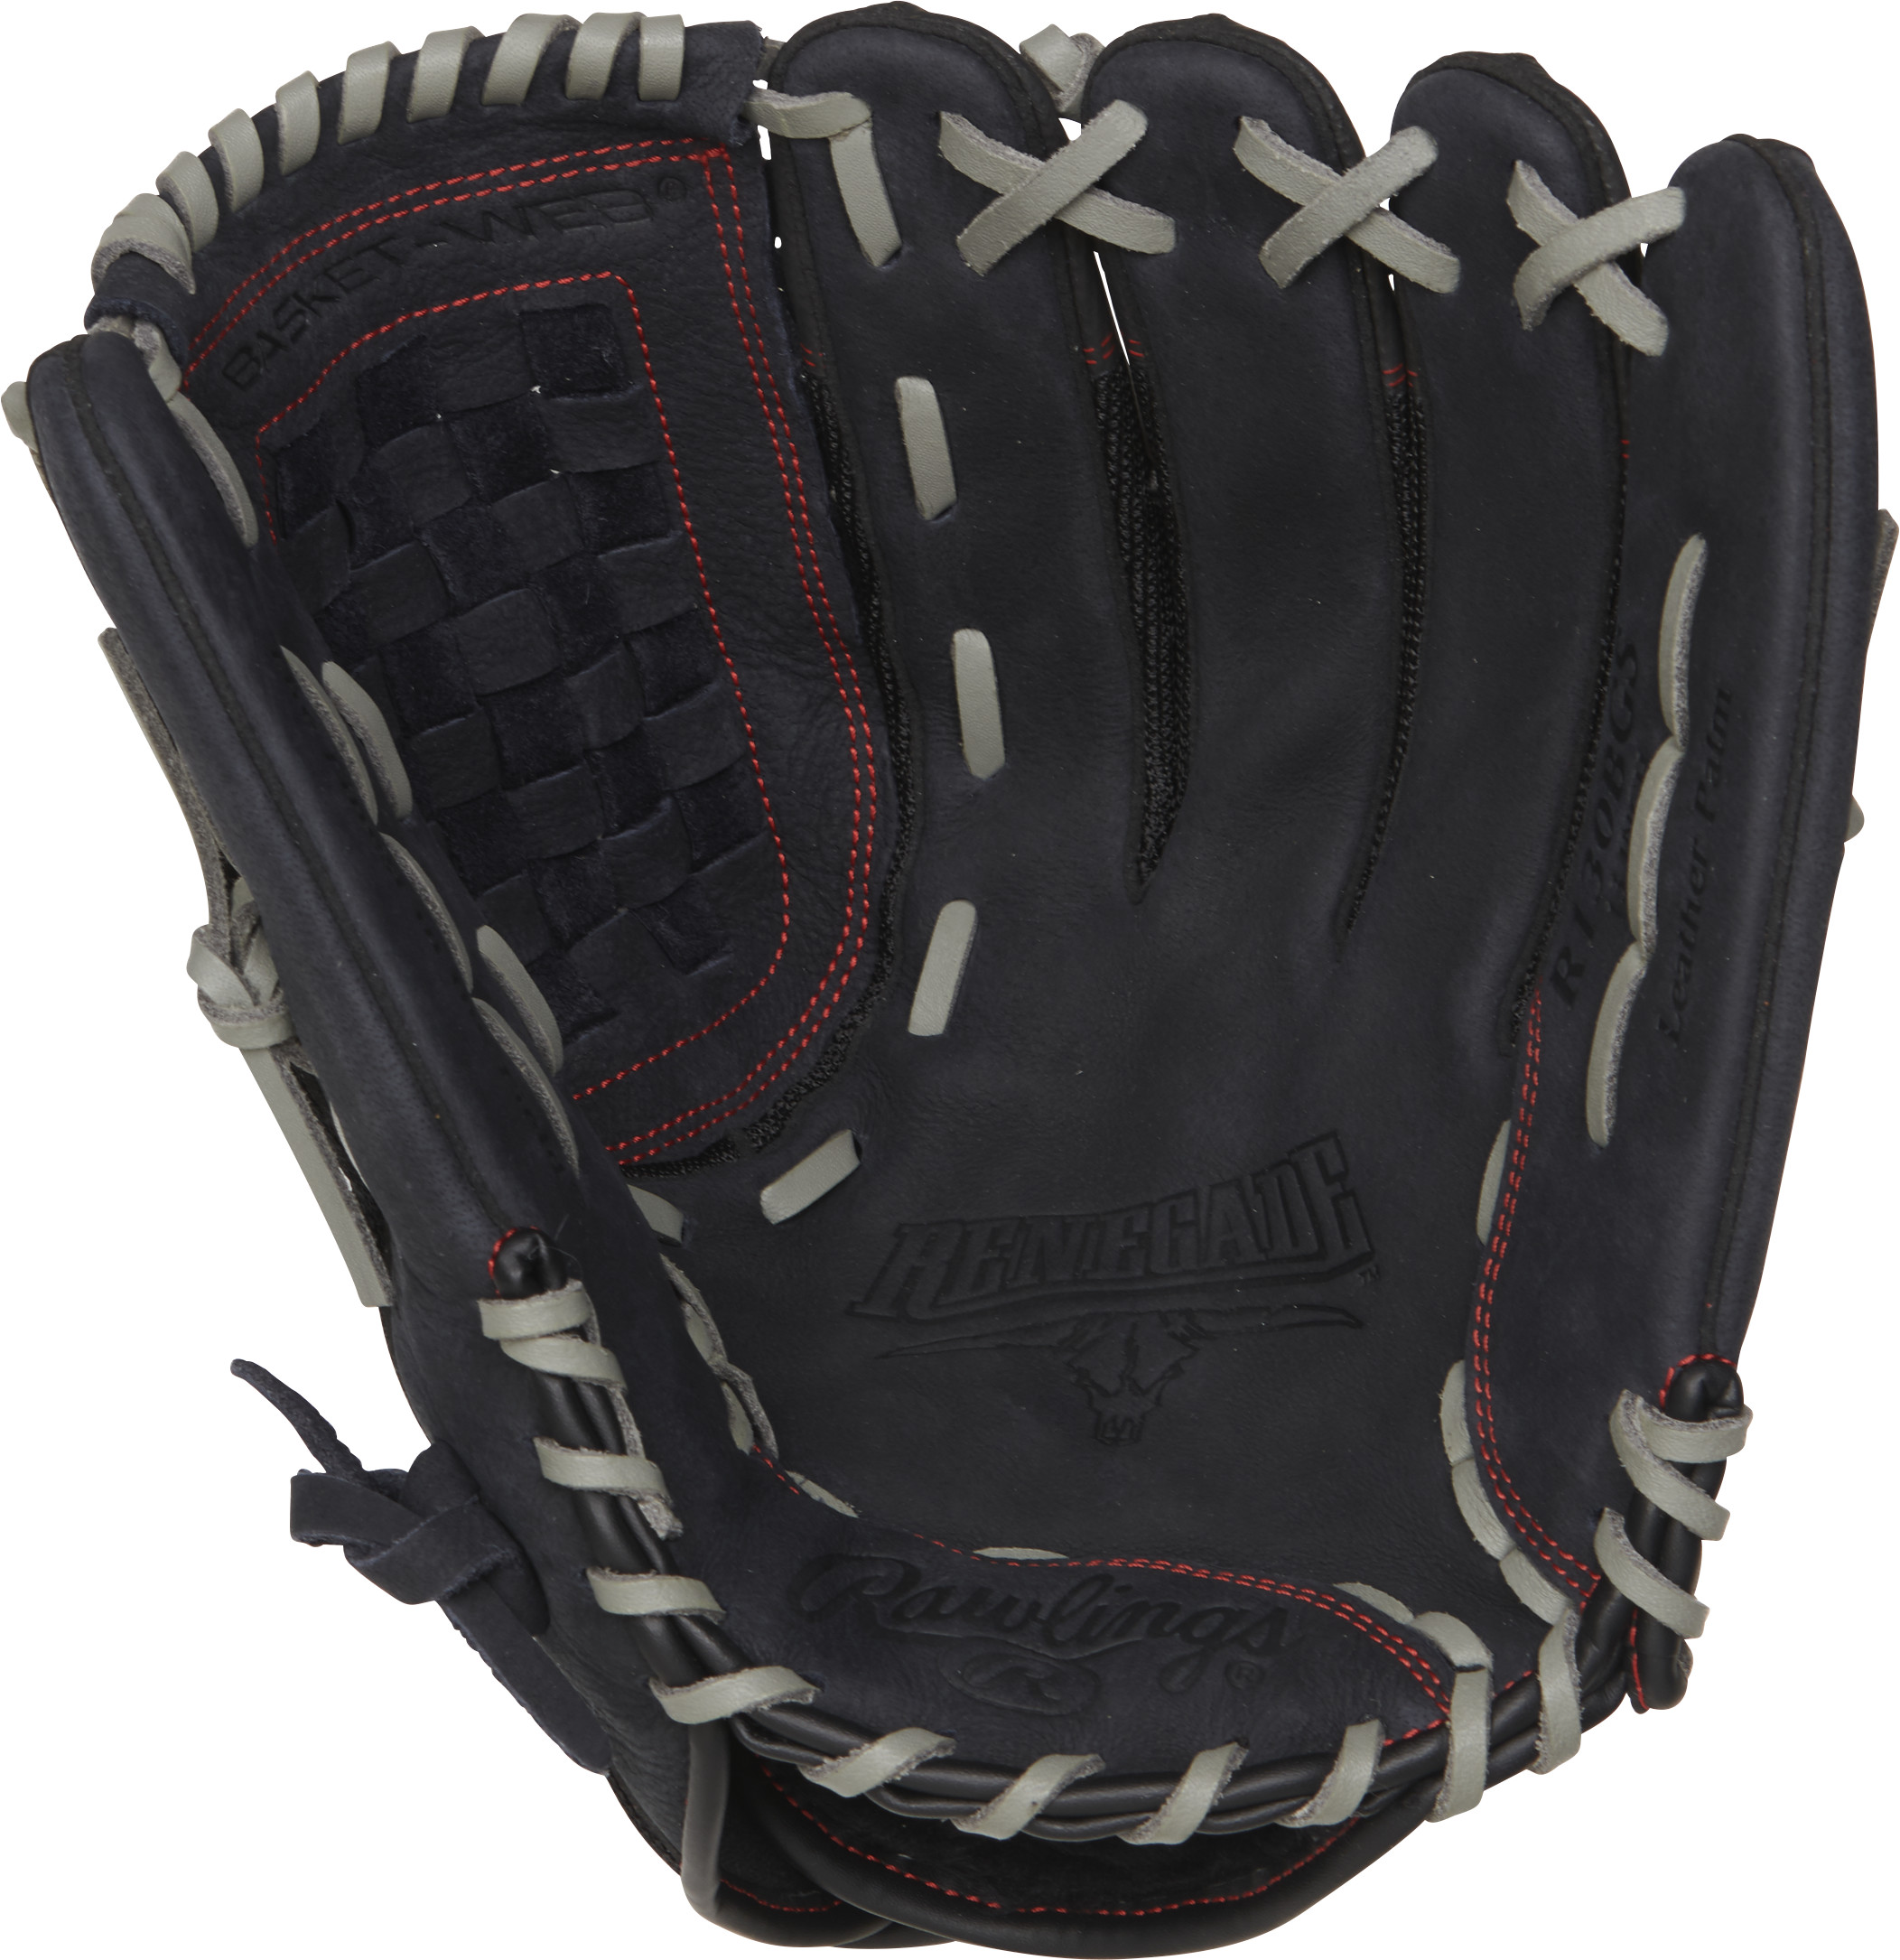 http://www.bestbatdeals.com/images/gloves/rawlings/R130BGS-1.jpg